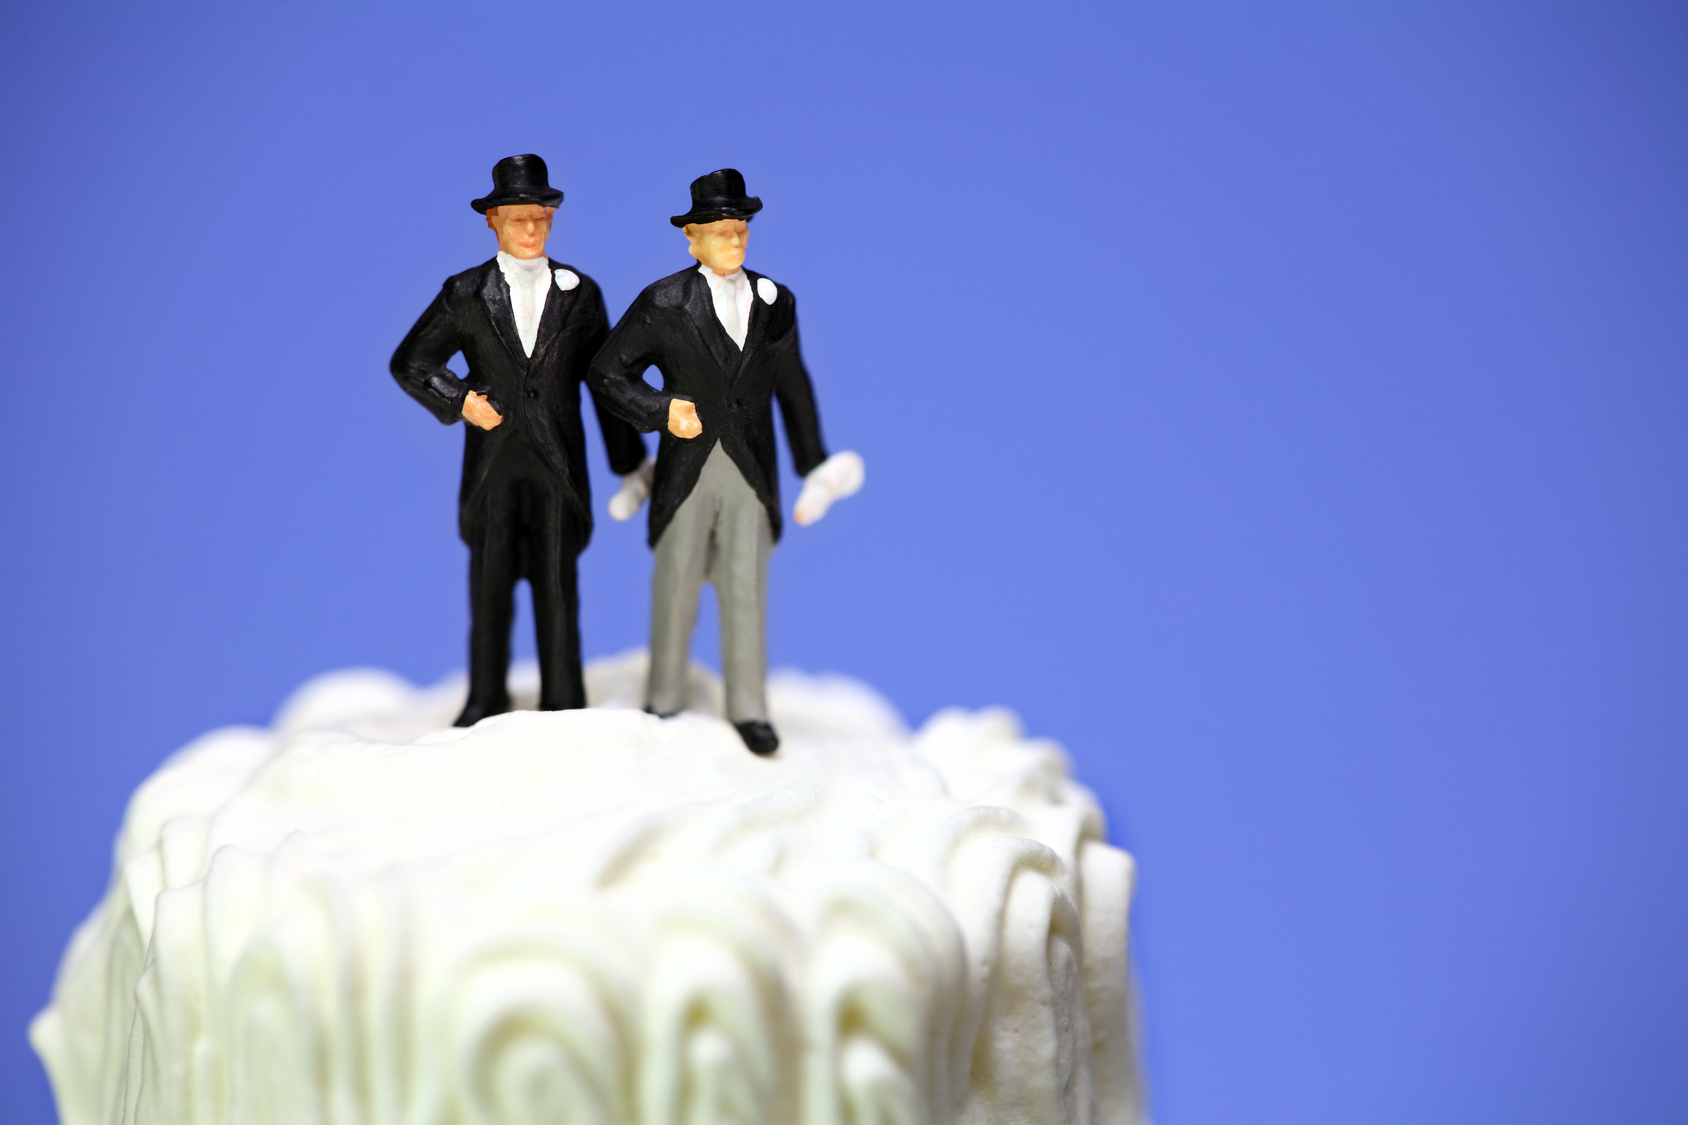 Gay Marriage in Britain, France, and Russia: Two Steps Forward, One Step Back